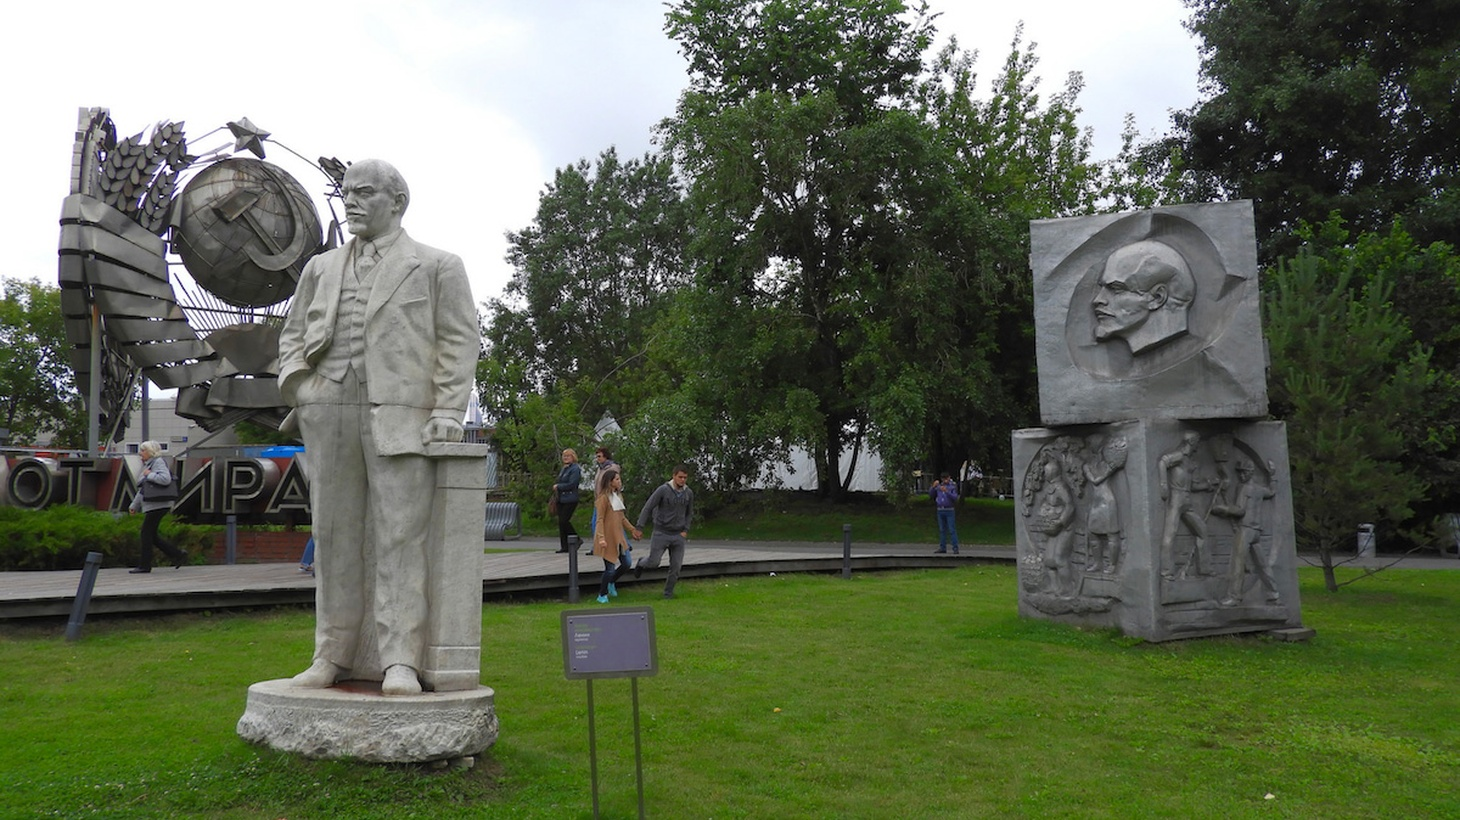 Edward Goldman talks about what happened to monuments to Russian czars and communist leaders, 100 years after the Russian Revolution.